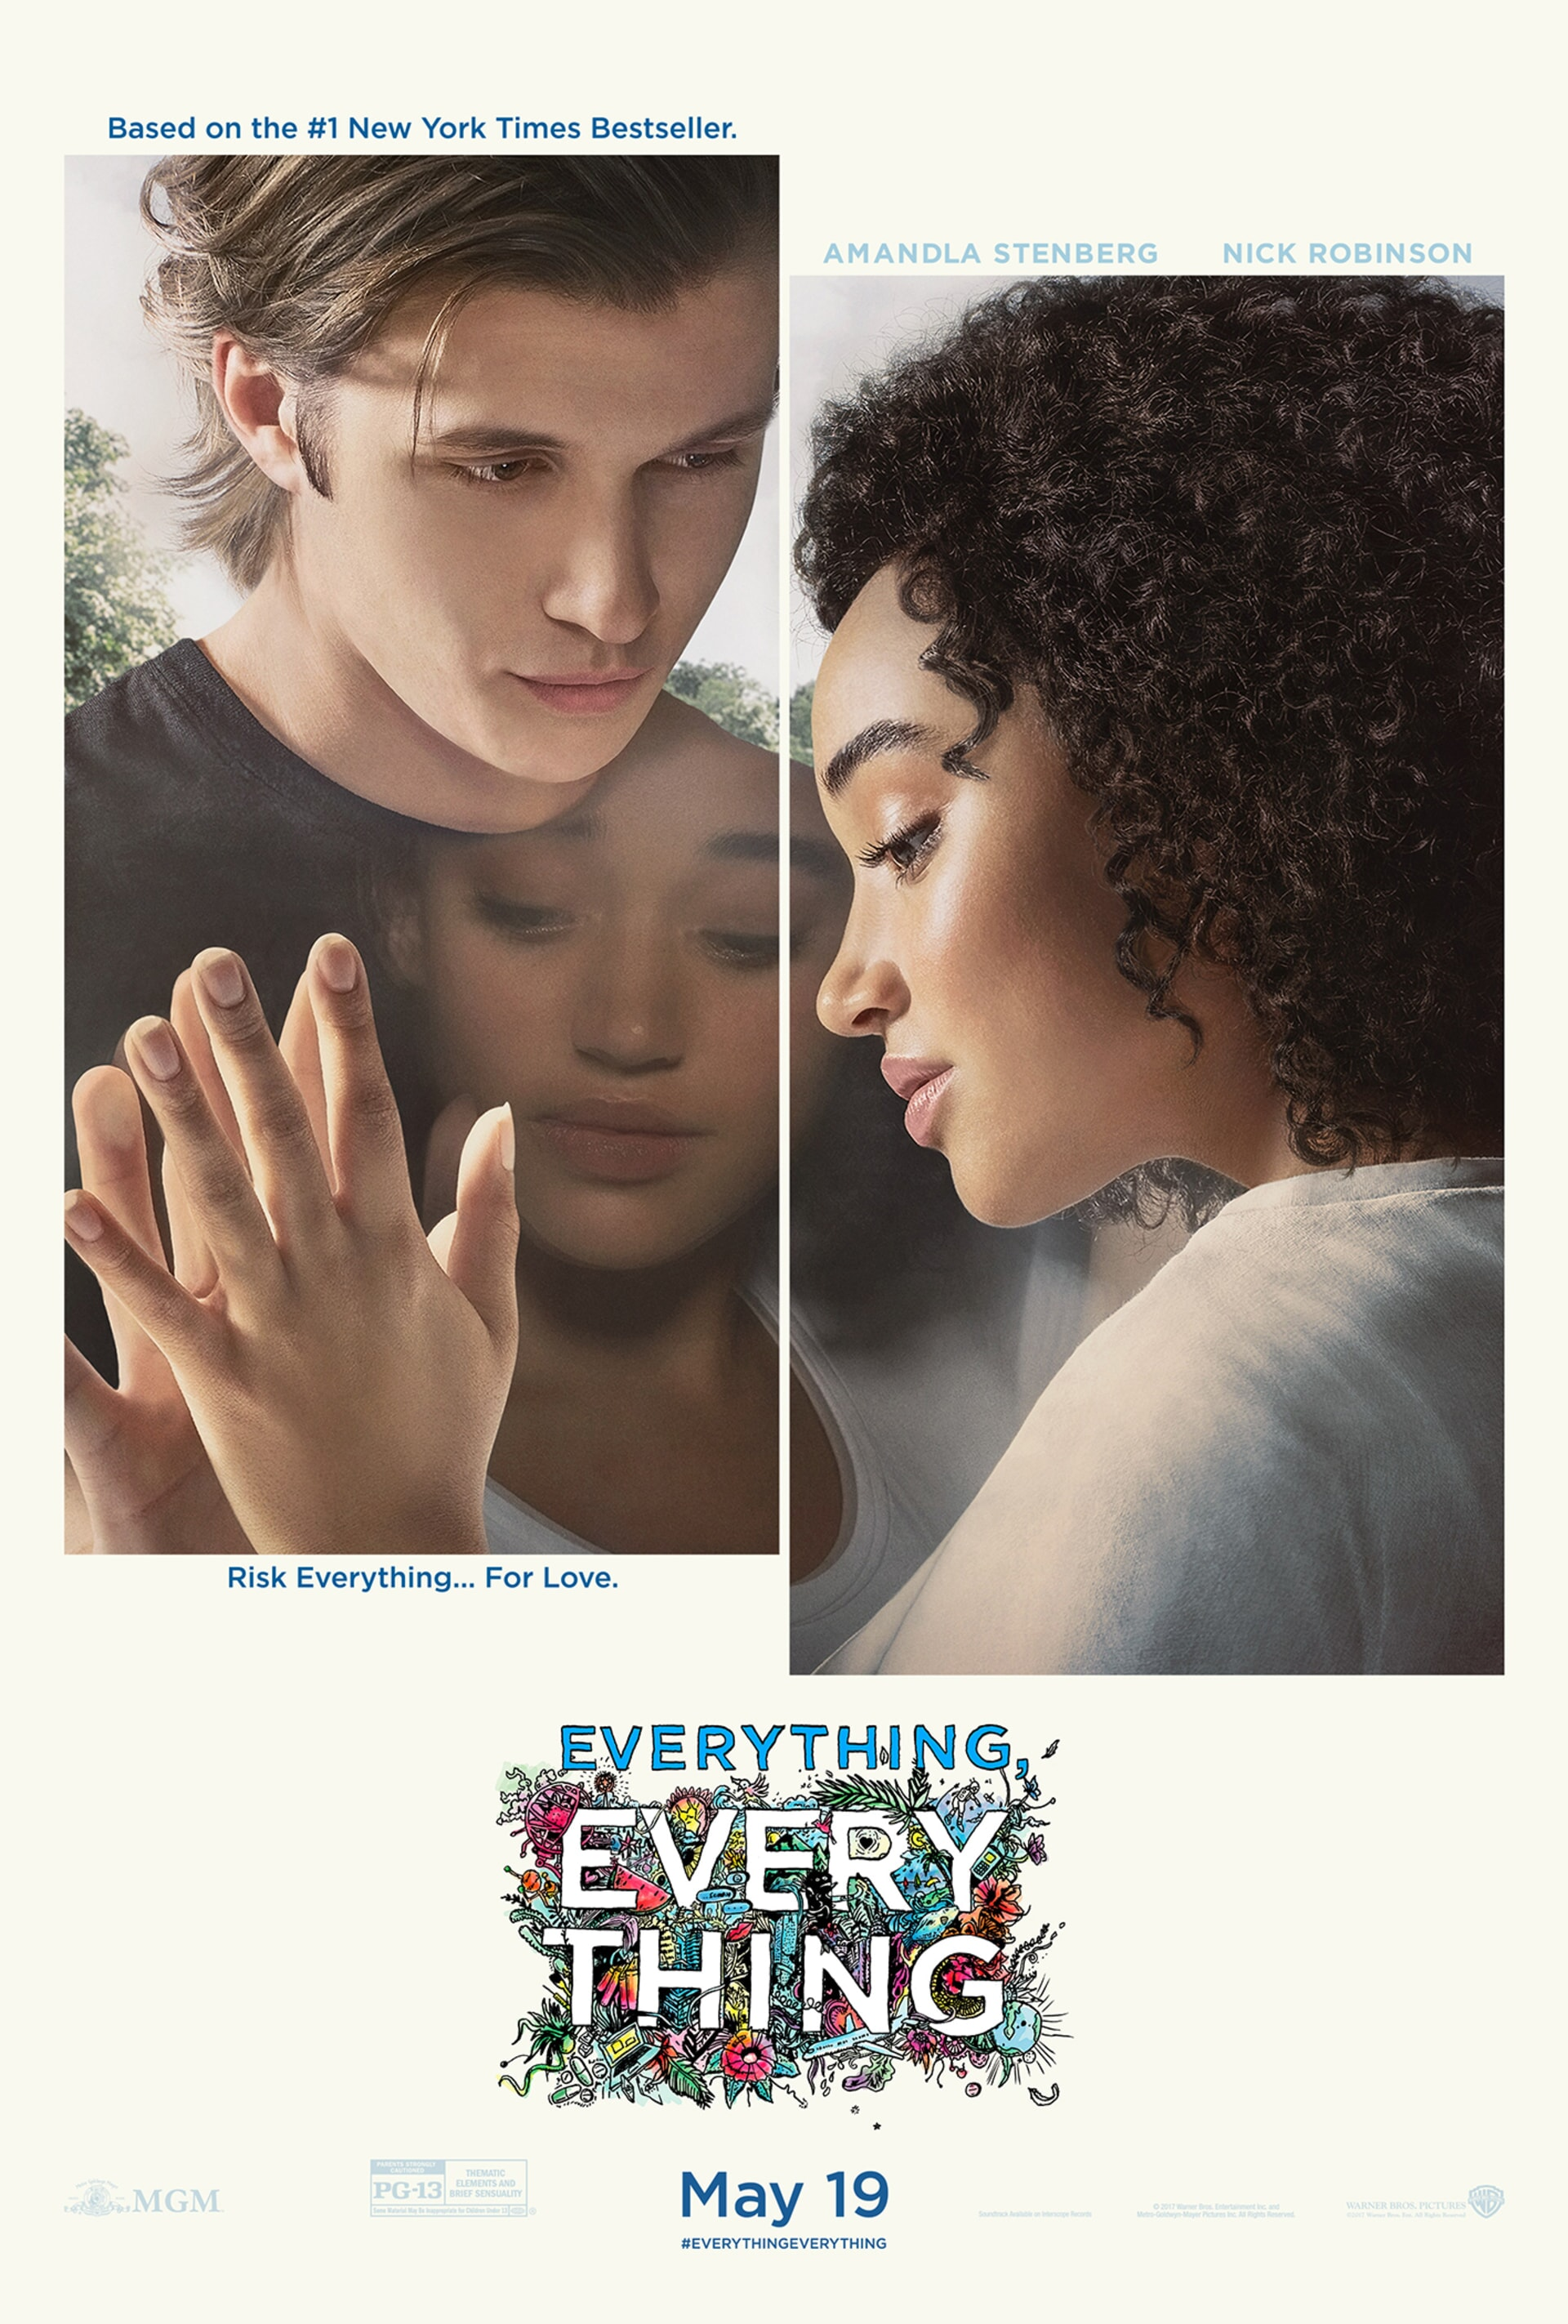 Amandla Stenberg and Nick Robinson looking through a window in poster art for Everything Everything